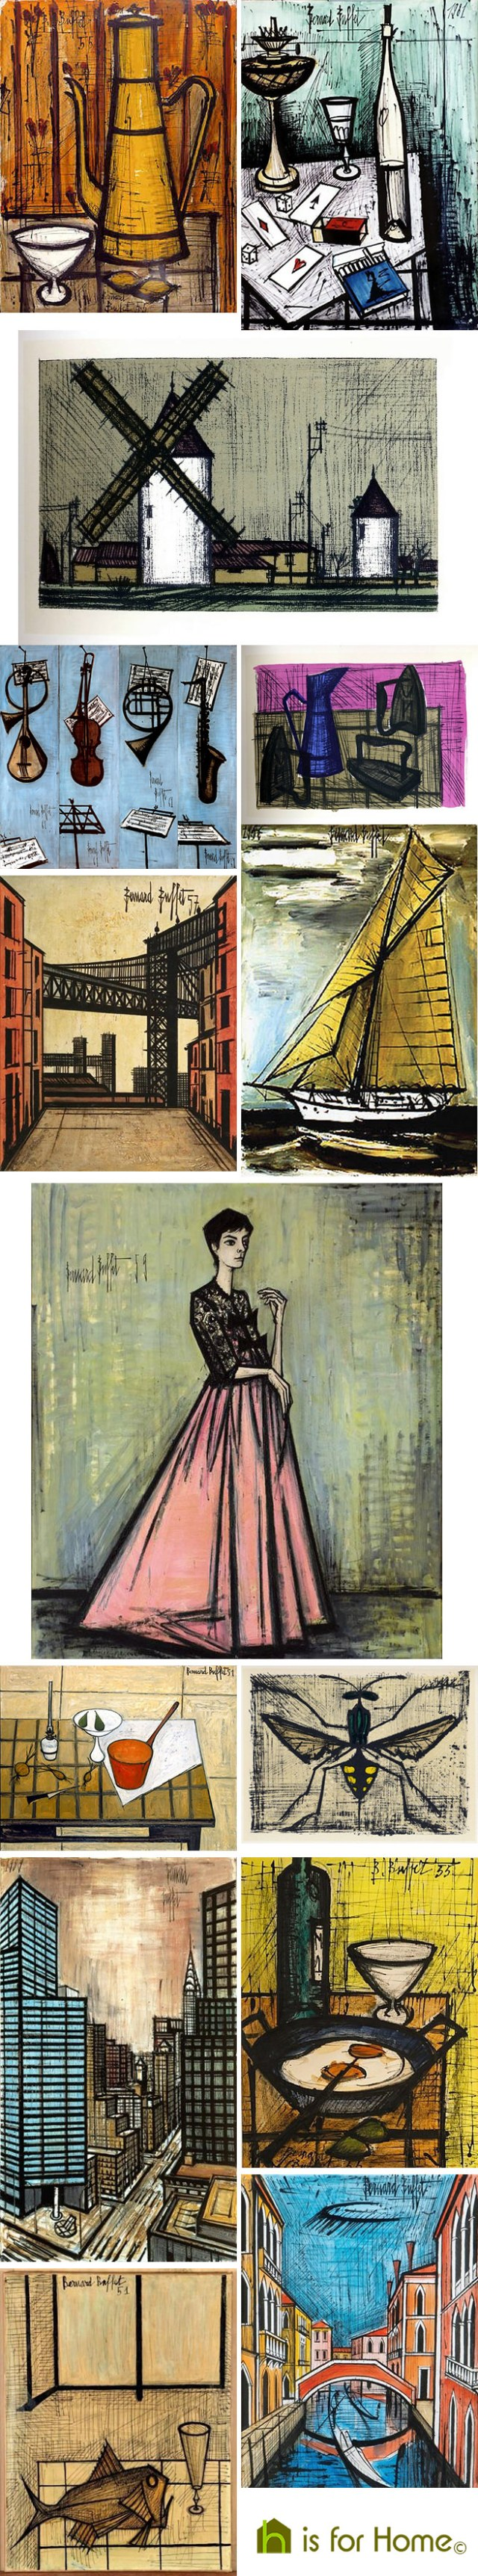 Mosaic of Bernard Buffet artwork | H is for Home